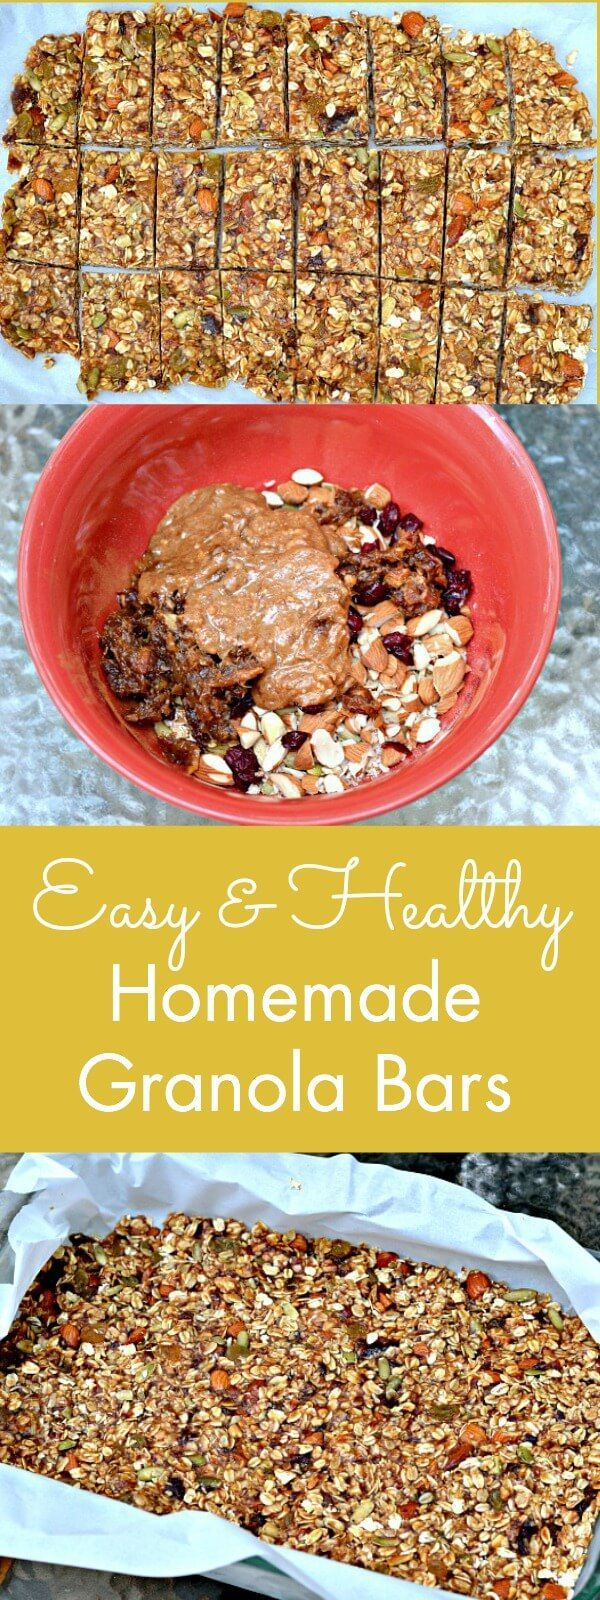 Kids and adults love these easy and healthy Homemade Granola Bars. Full of good stuff like oats, almonds, pumpkin seeds, cinnamon, dried fruit and more. Make a big batch, slice and store them in the fridge or freezer for an on the go snack.